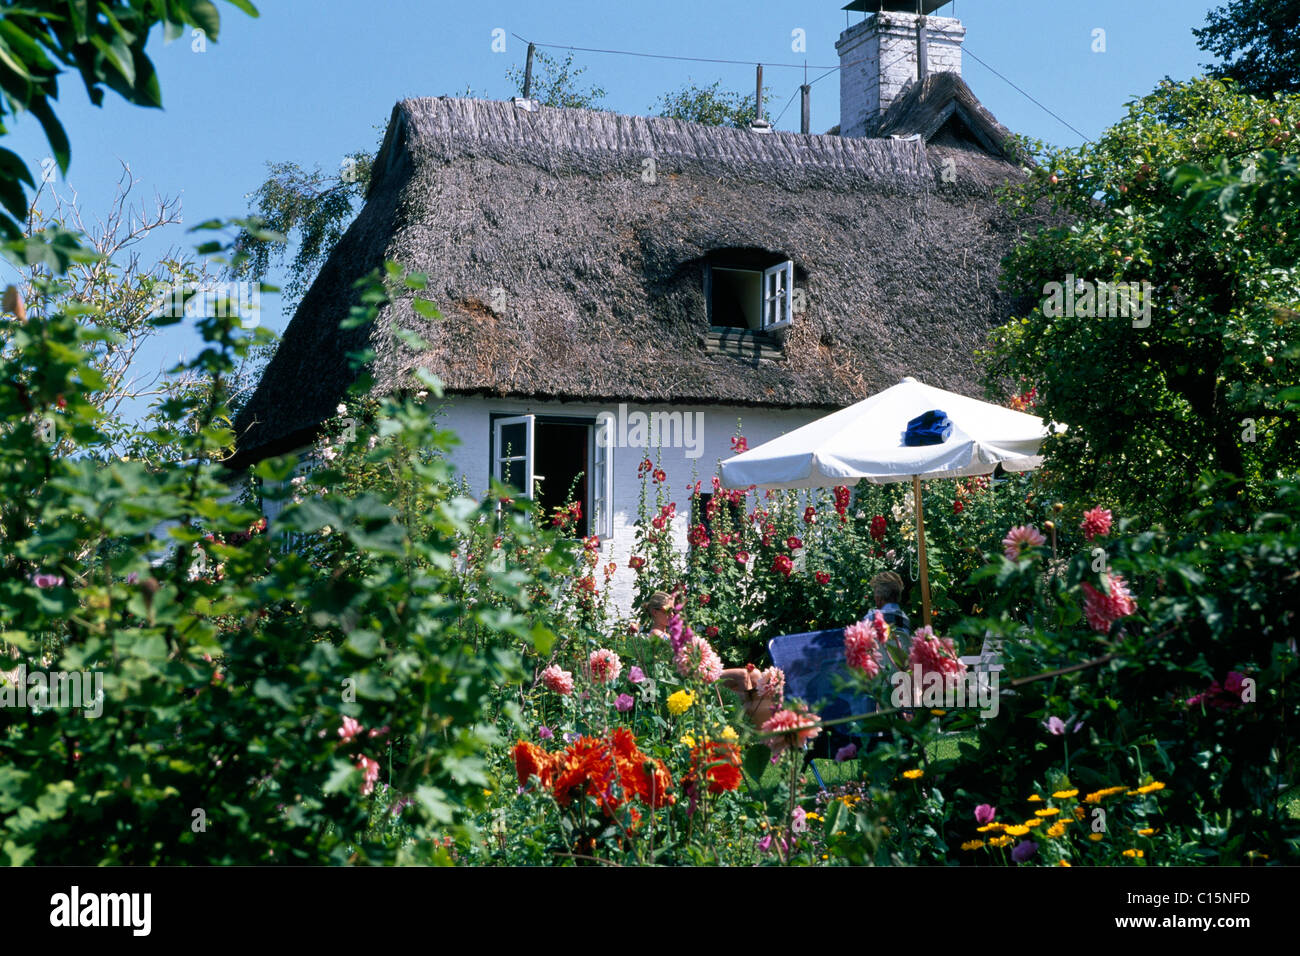 thatched thatch roof house sieseby schlei schleswig holstein stock photo royalty free image. Black Bedroom Furniture Sets. Home Design Ideas